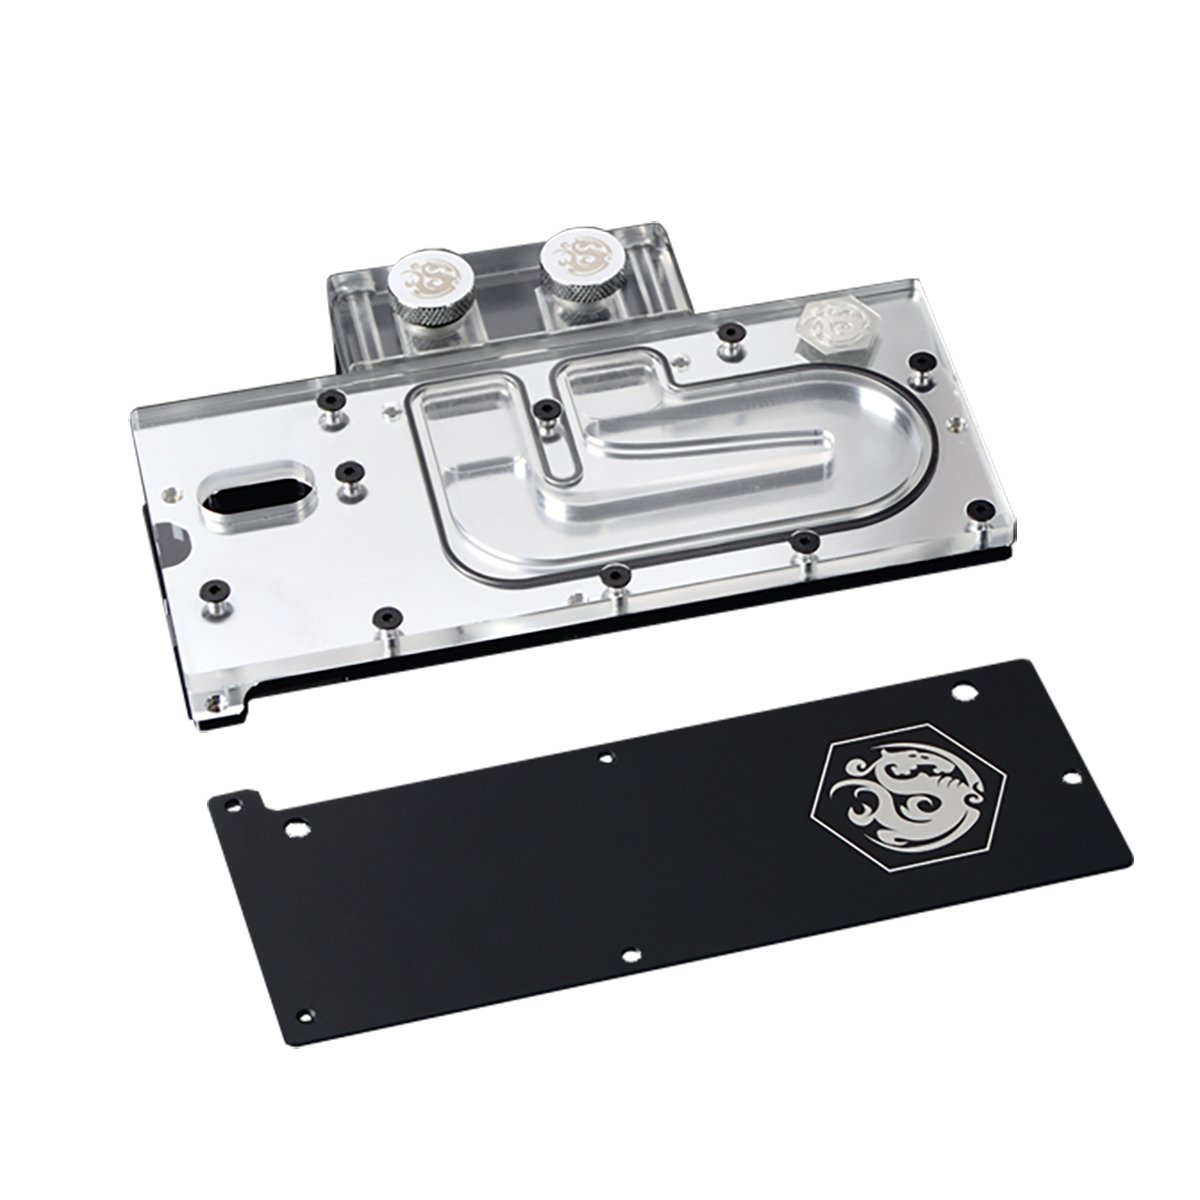 Bitspower PCI-E SSD Waterblock V2 for Intel Solid-State Drive 750 Series, Clear Acrylic by Bitspower